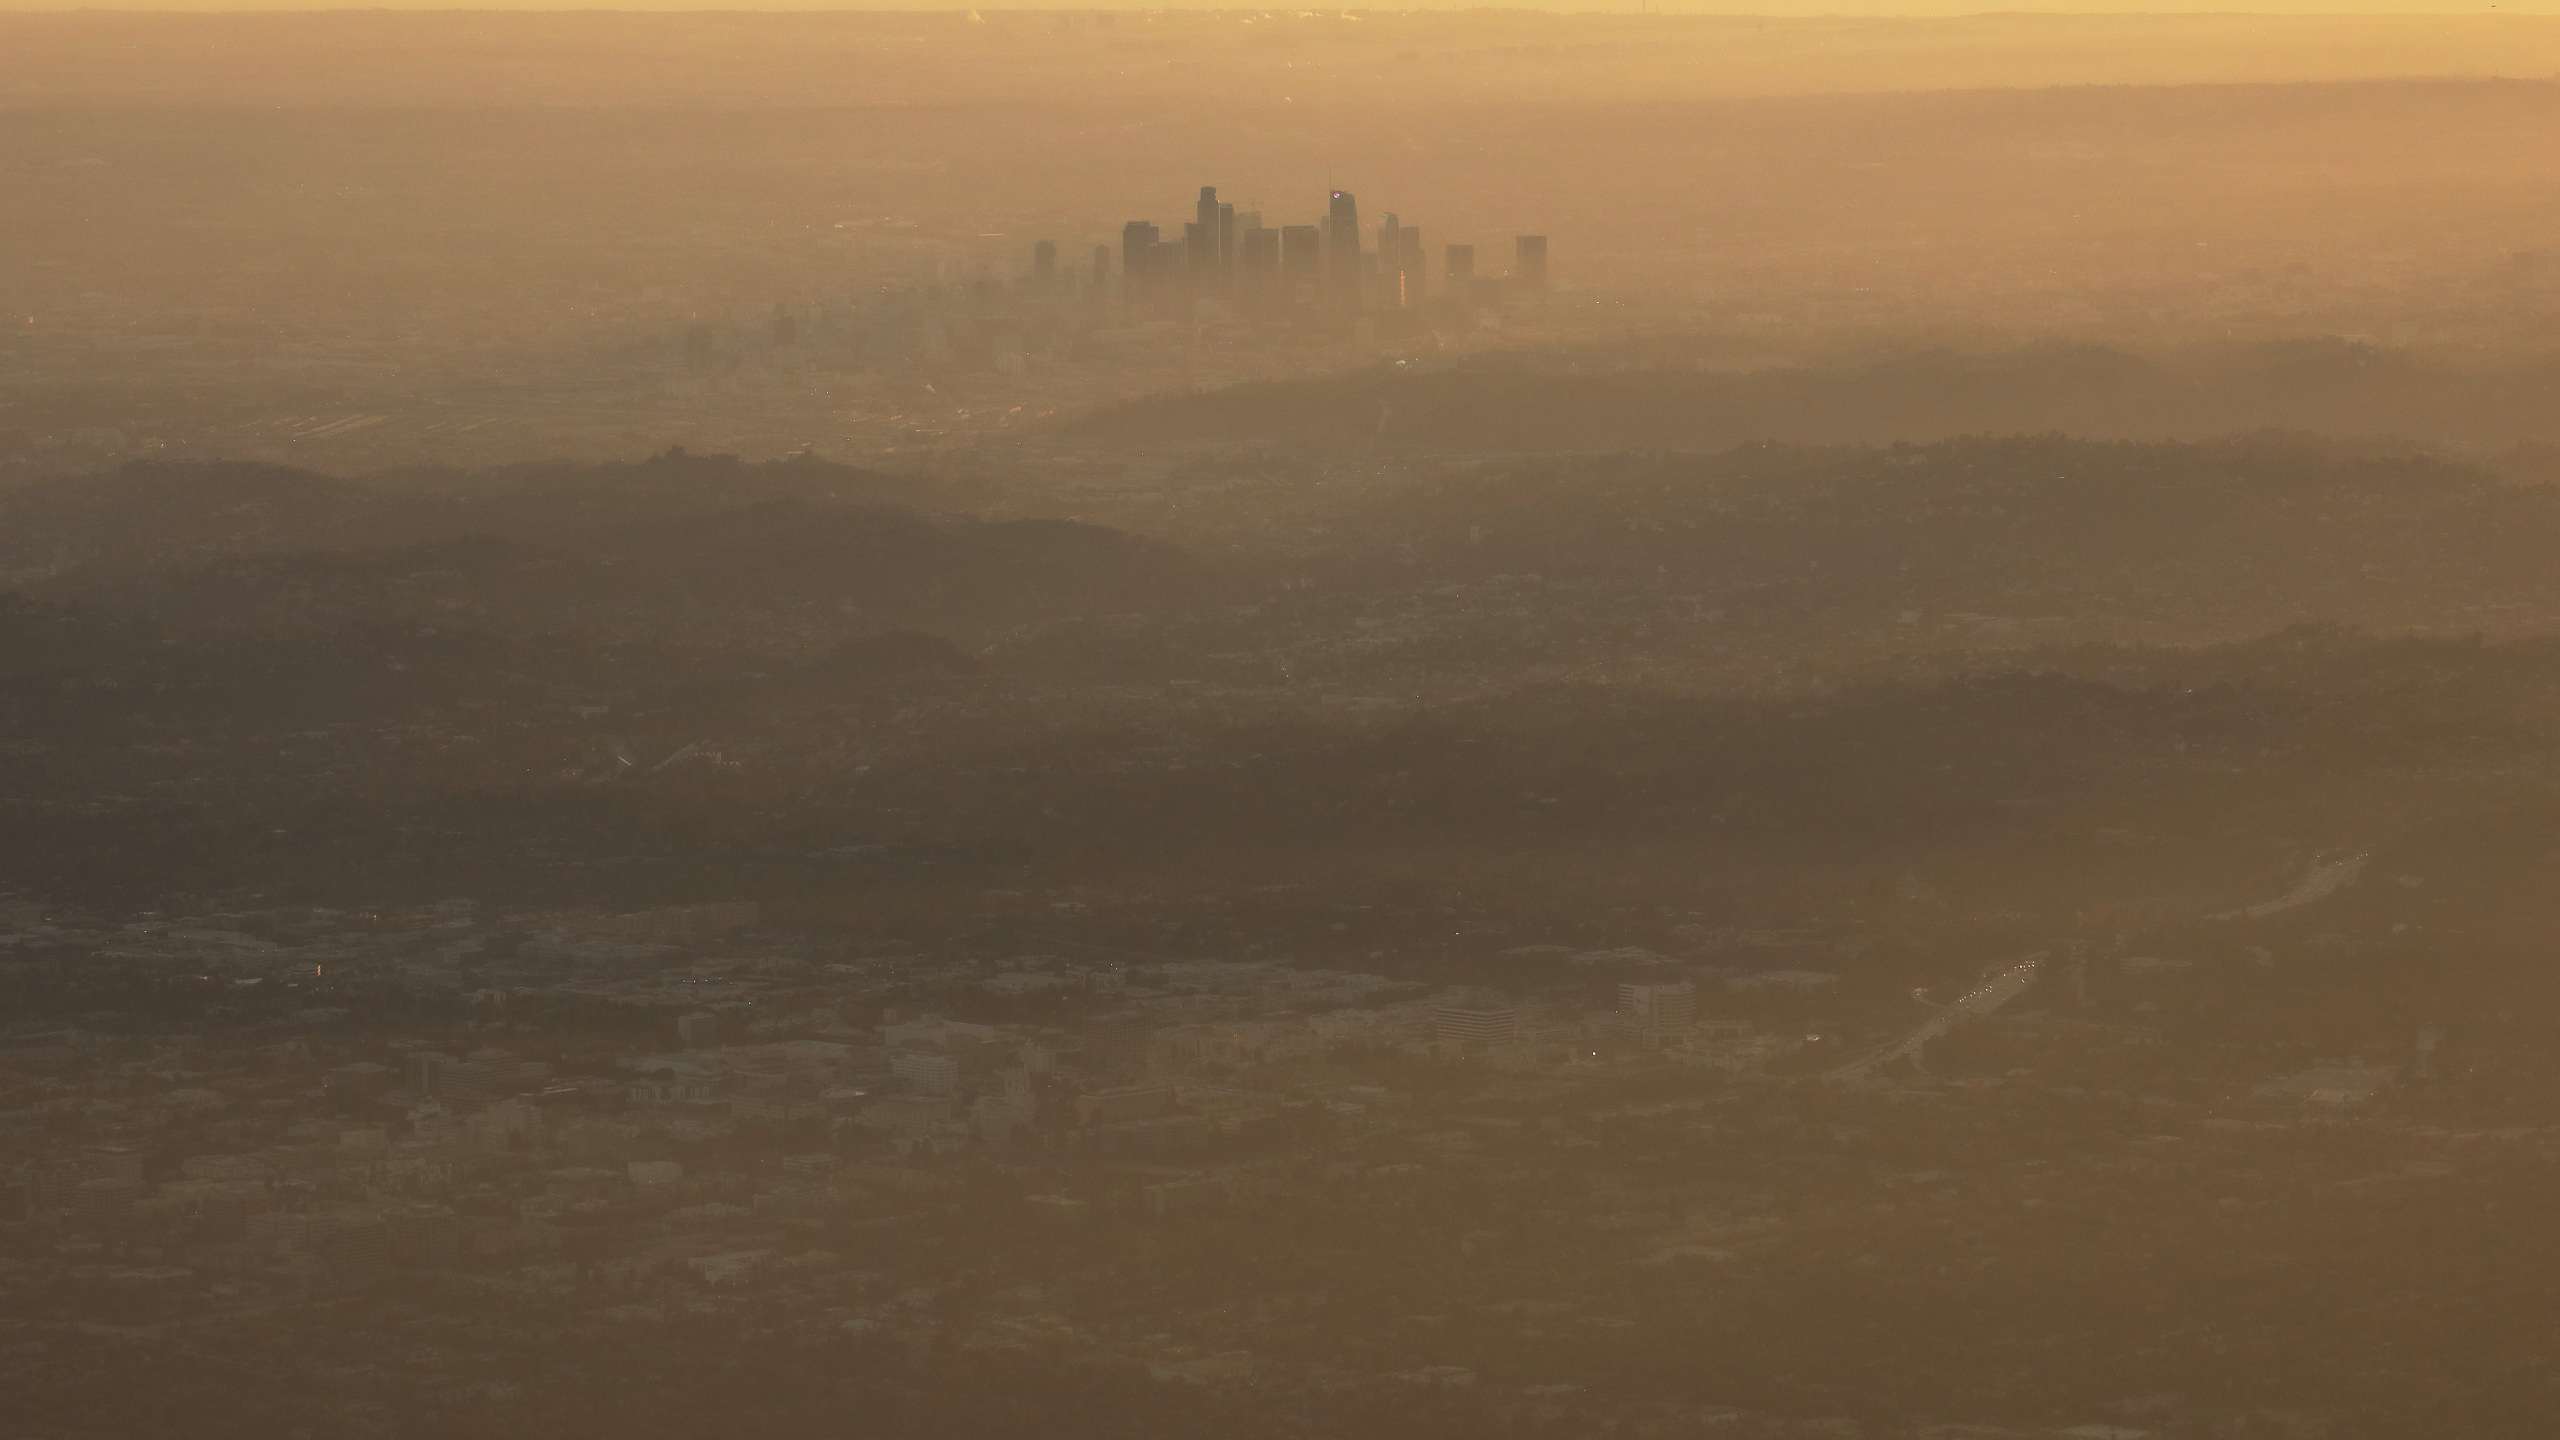 """The buildings of downtown Los Angeles are partially obscured in the late afternoon on Nov. 5, 2019 as seen from Pasadena. The air quality for metropolitan Los Angeles was predicted to be """"unhealthy for sensitive groups"""" that day by the South Coast Air Quality Management District. The Trump administration has begun officially withdrawing from the Paris Climate Agreement. A new report by more than 11,000 scientists worldwide states that the planet """"clearly and unequivocally faces a climate emergency."""" (Mario Tama/Getty Images)"""